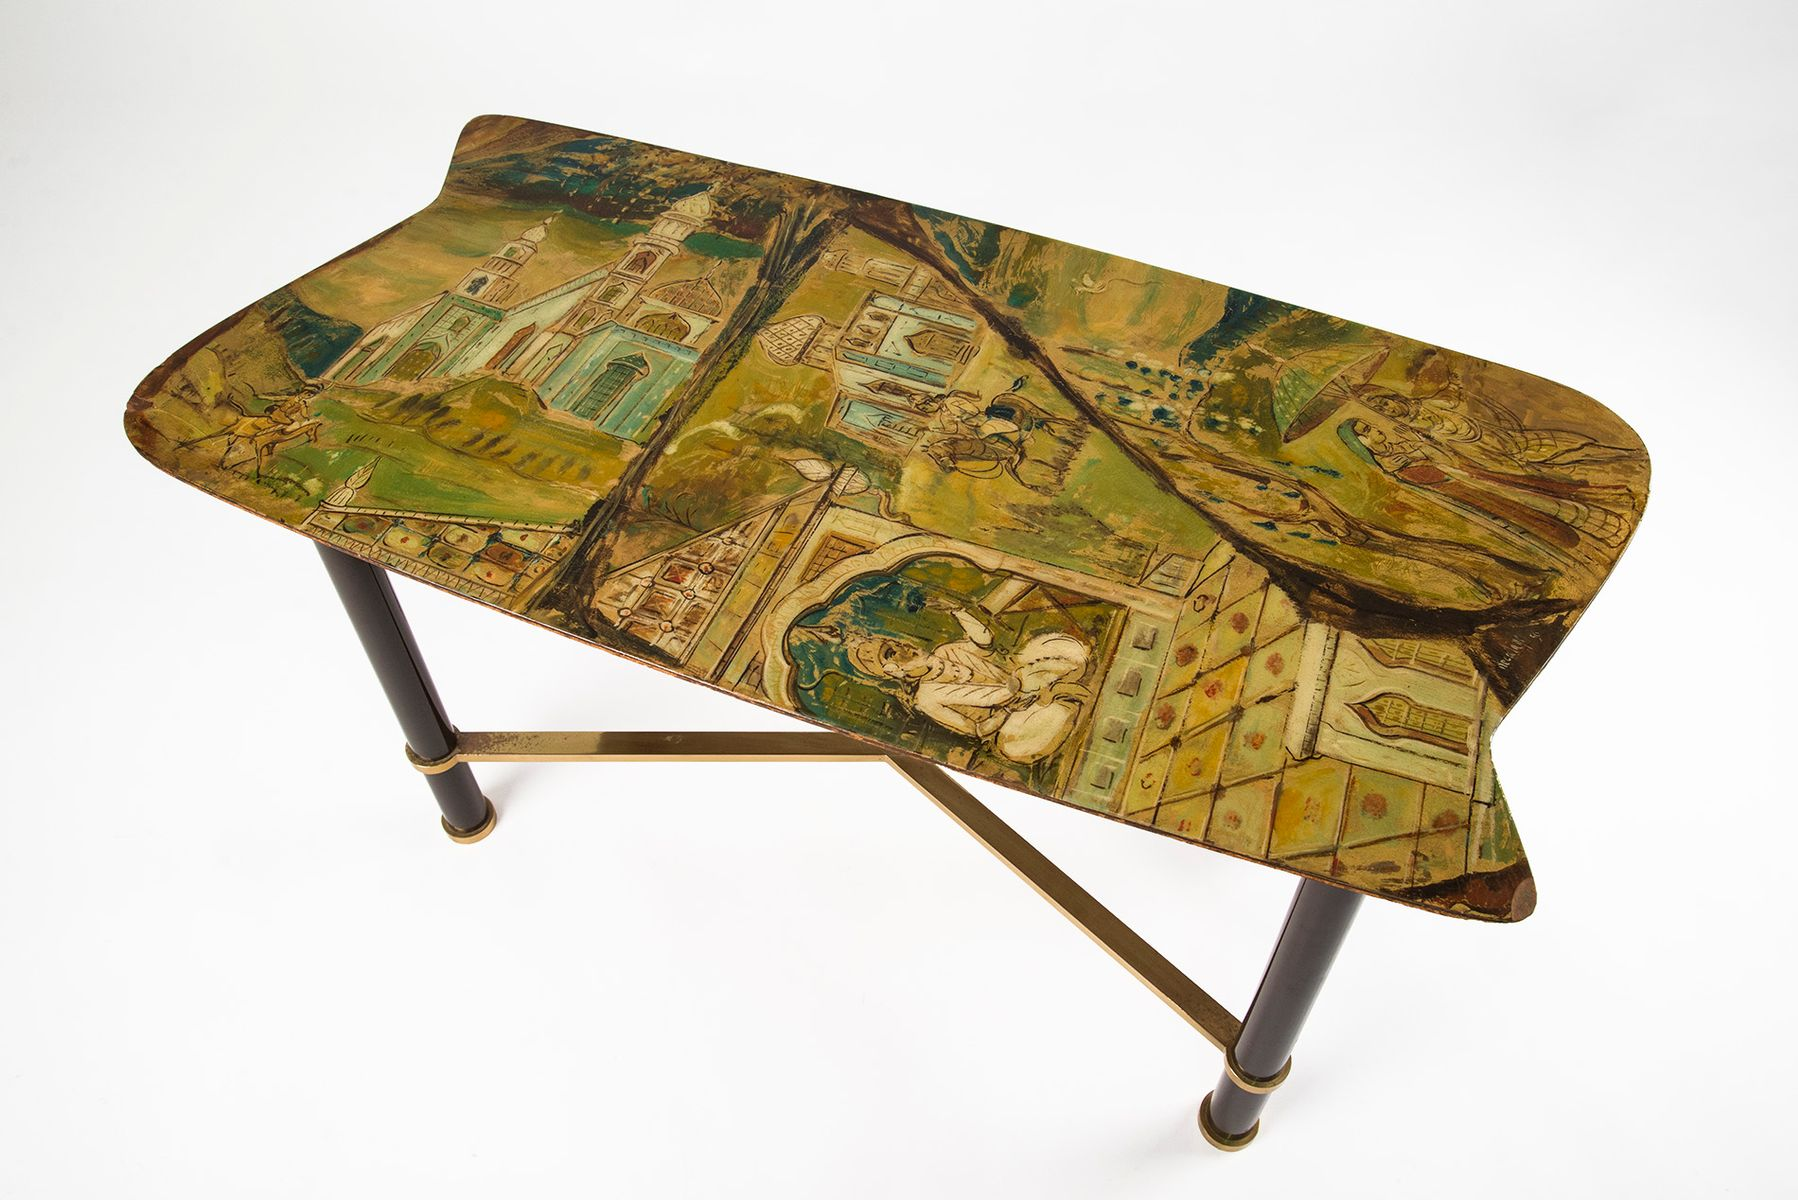 Hand Painted Italian Coffee Table by Gruppo Decalage 1956 for